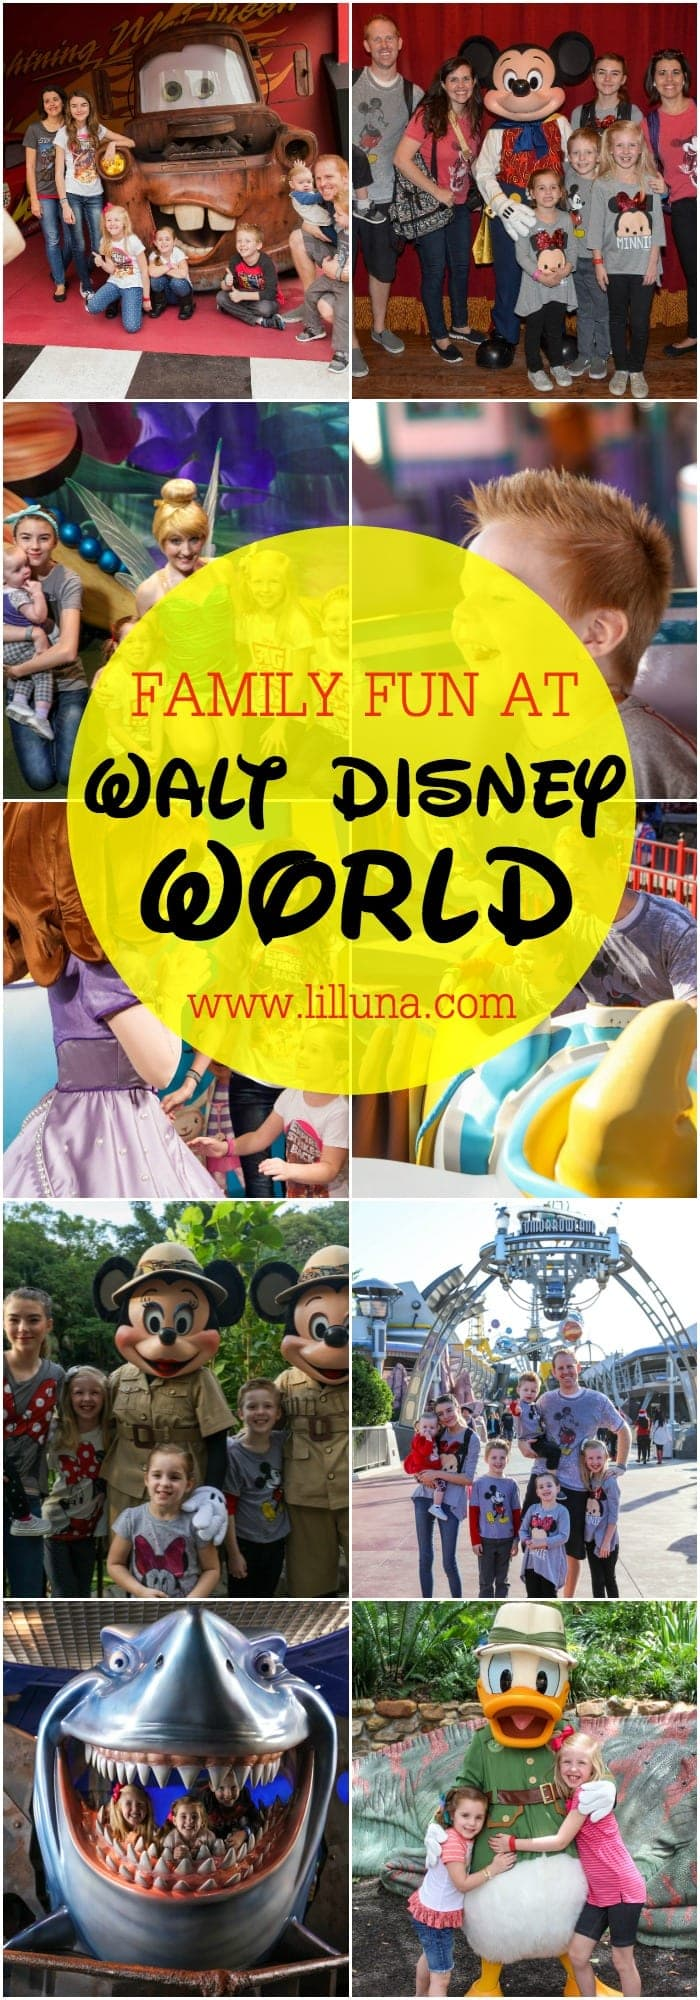 Family FUN at Walt Disney World - so many fun things to do at the Happiest Place on Earth. Get all the details on lilluna.com. #ad